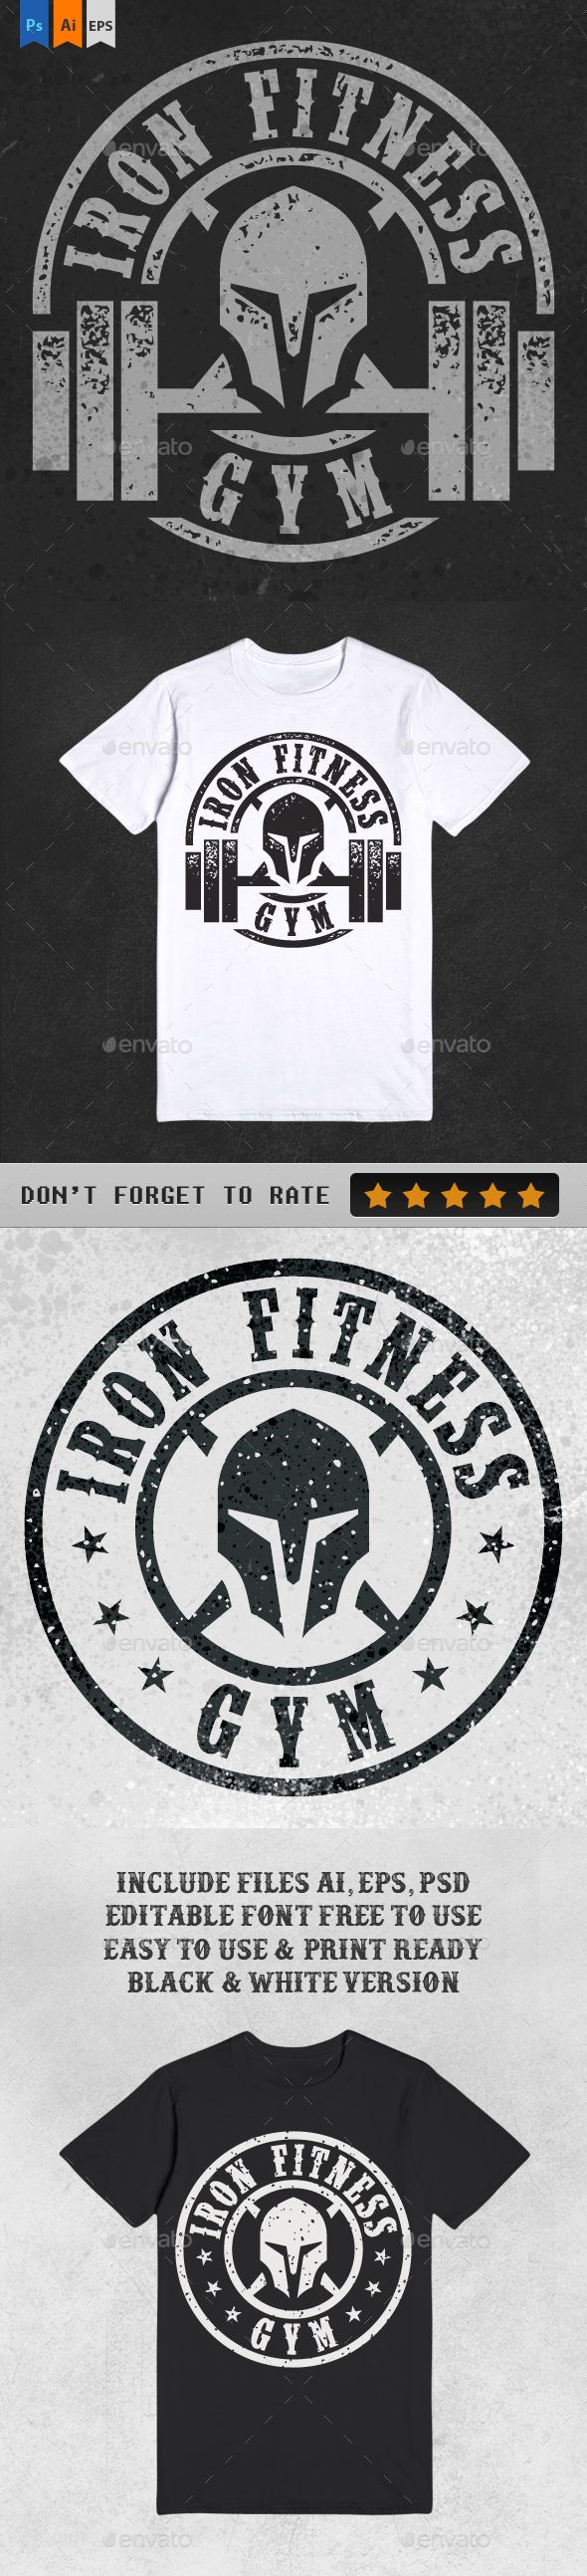 Double Iron Fitness Gym Illustration for TShirt design